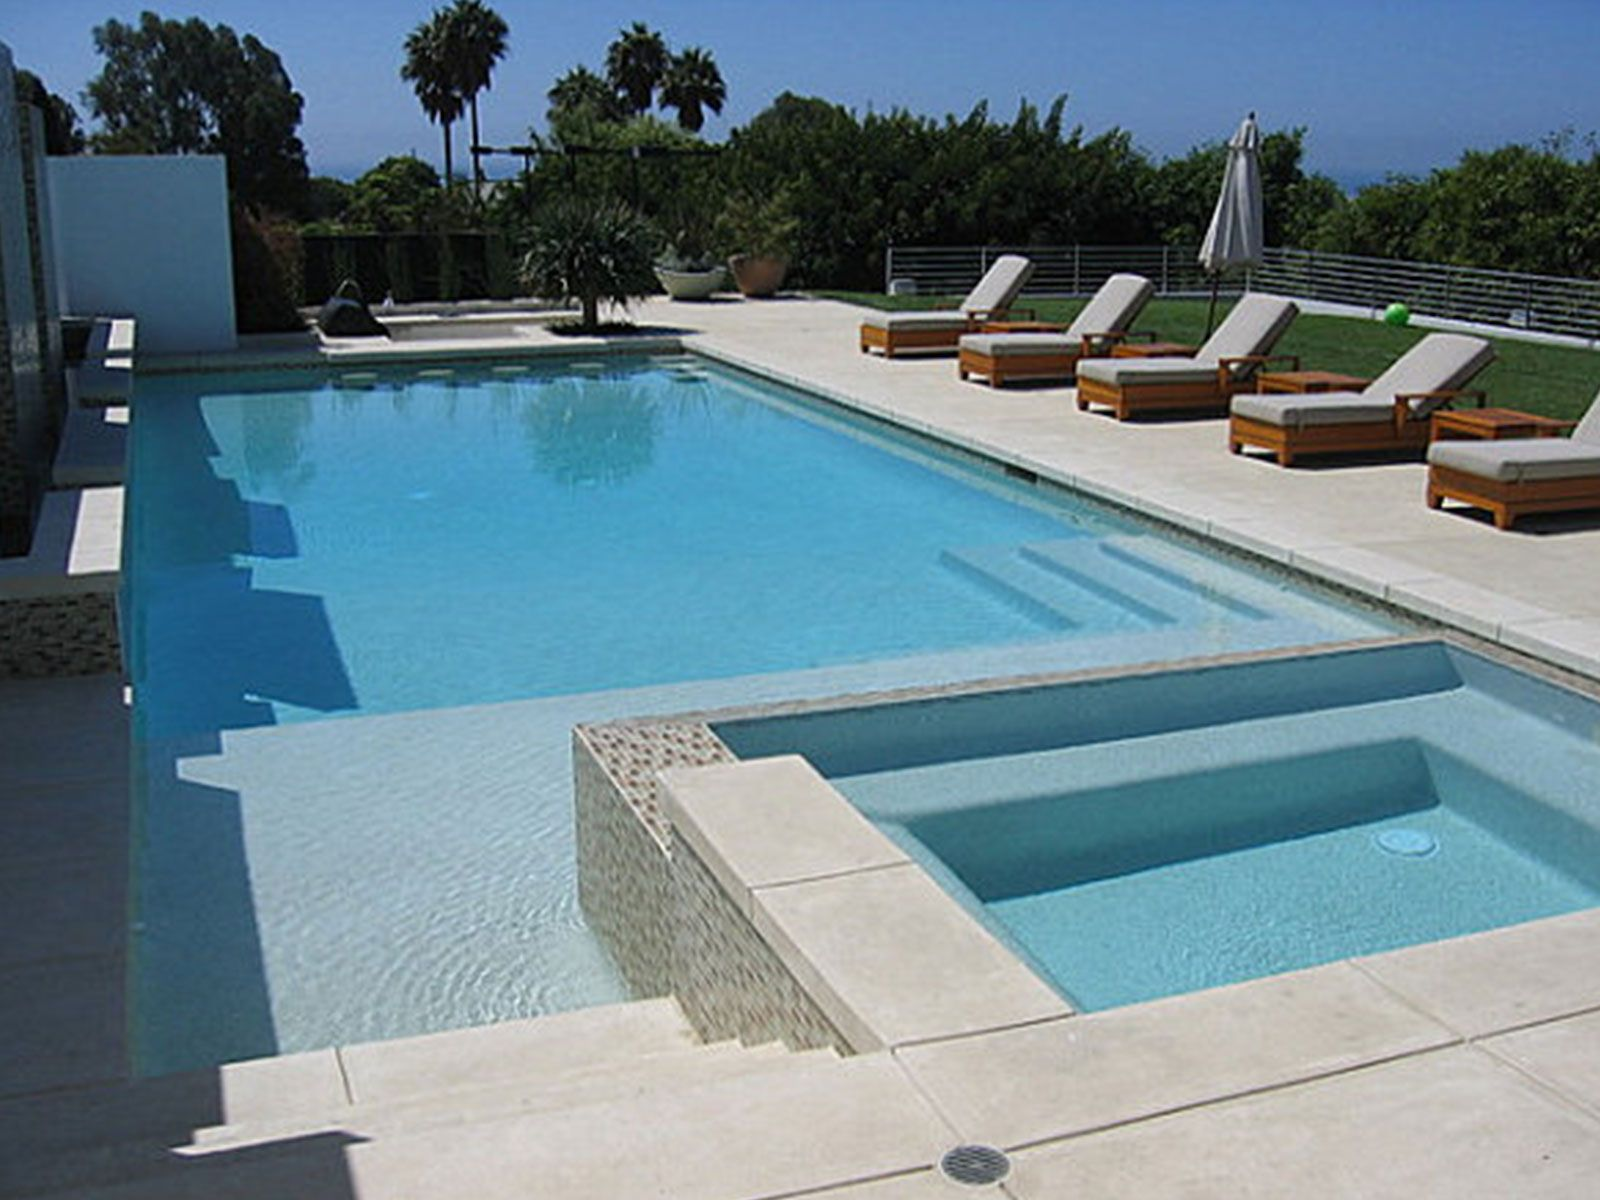 simple swimming pool design image modern creative swimming modern swimming pools and spas gunite pool - Gunite Pool Design Ideas